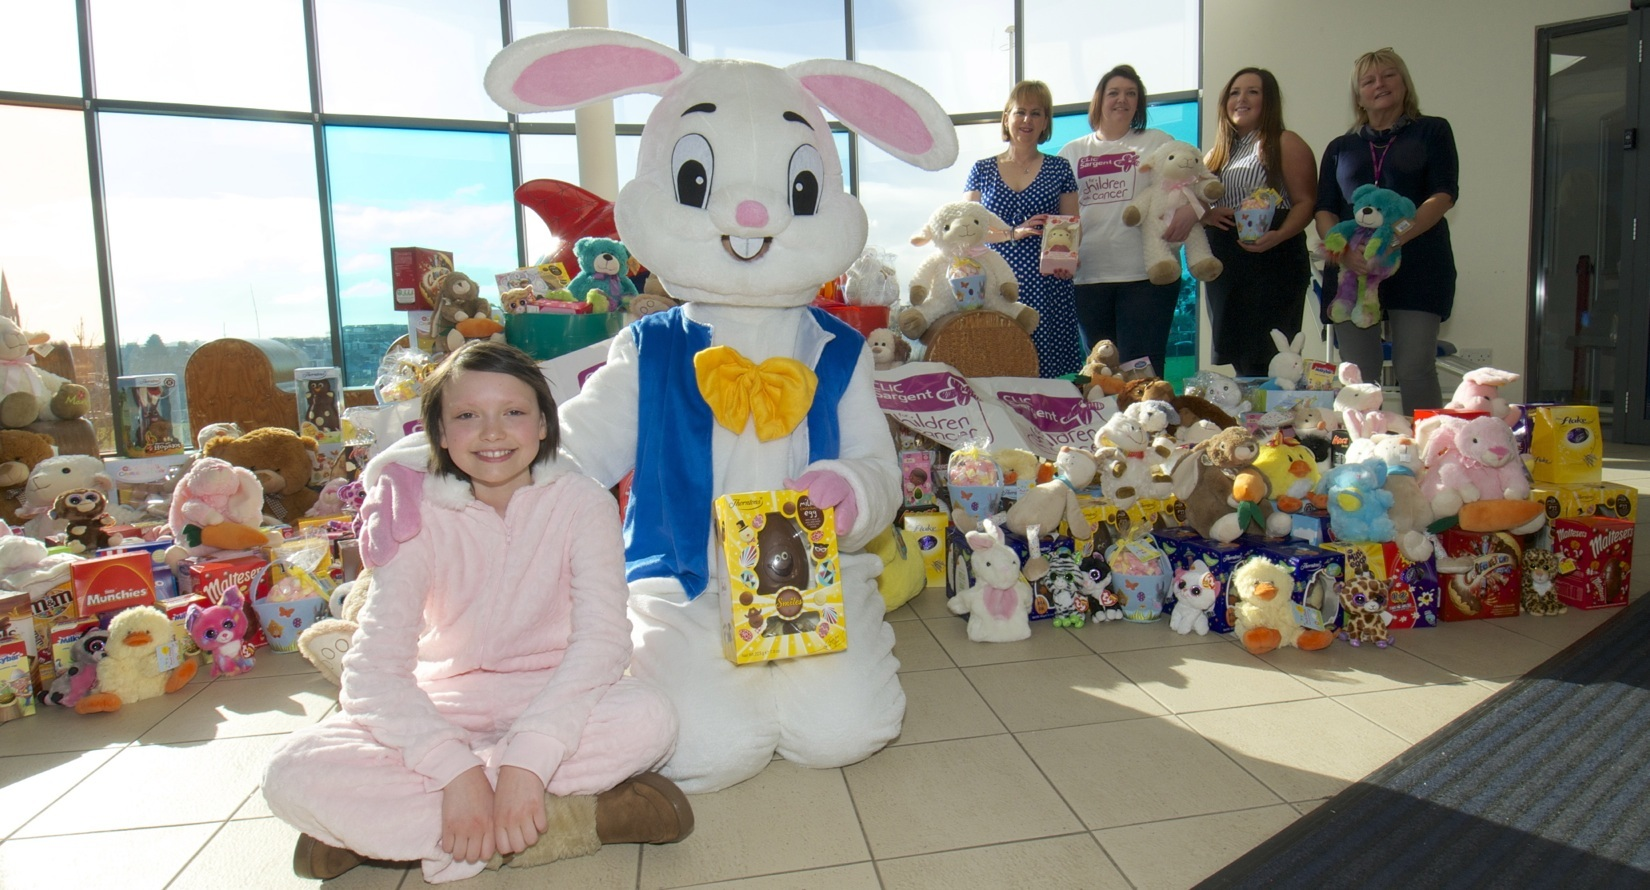 Patient Abbie Nain with Easter Bunny